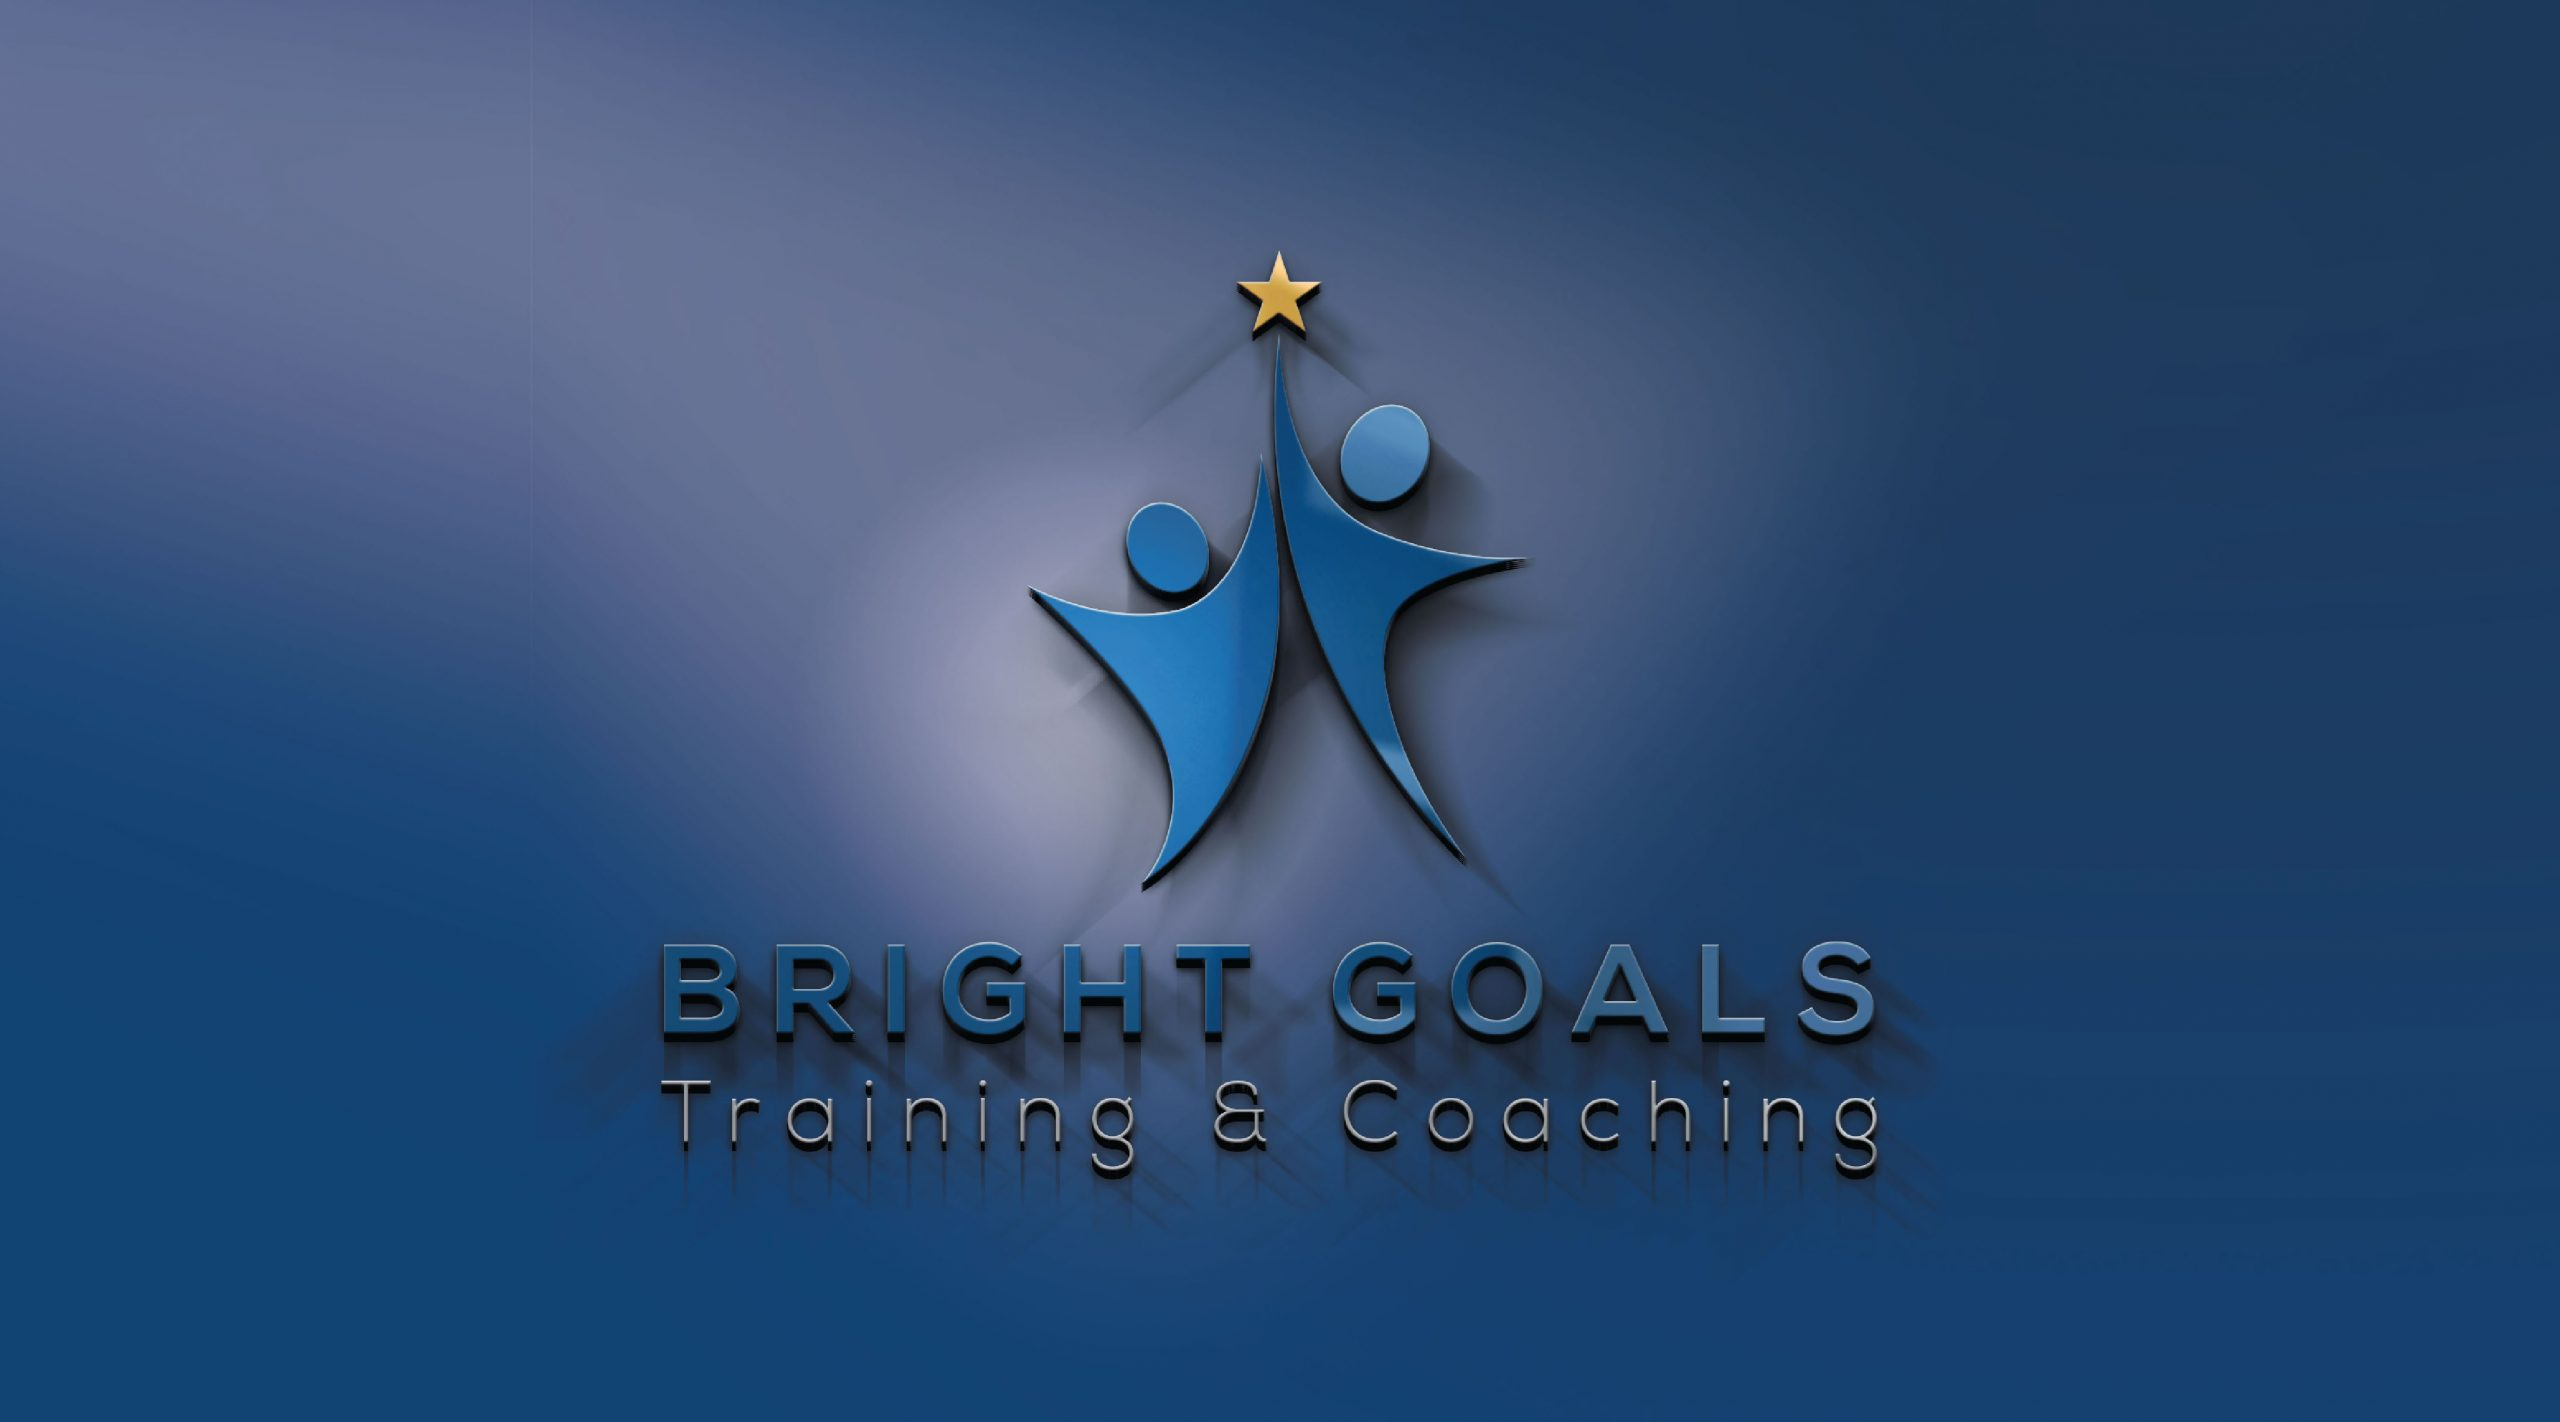 Bright Goals Training & Coaching